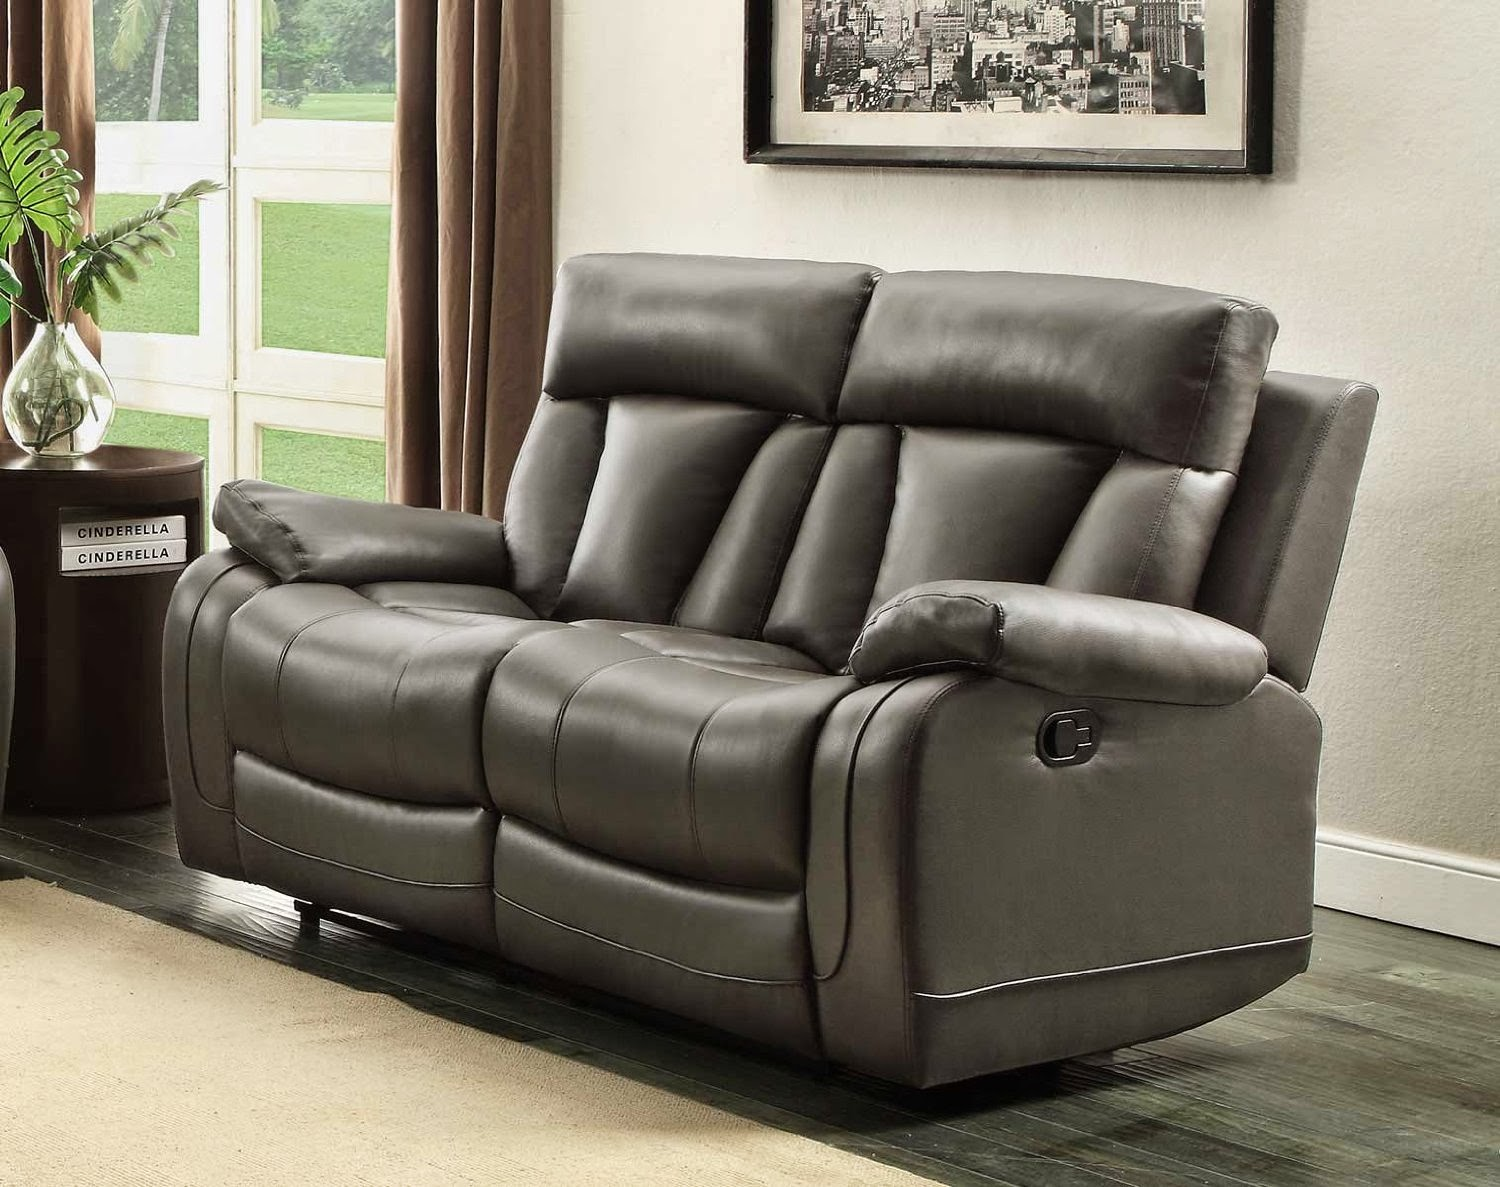 Vivaldi 2 Seater Reclining Leather Sofa